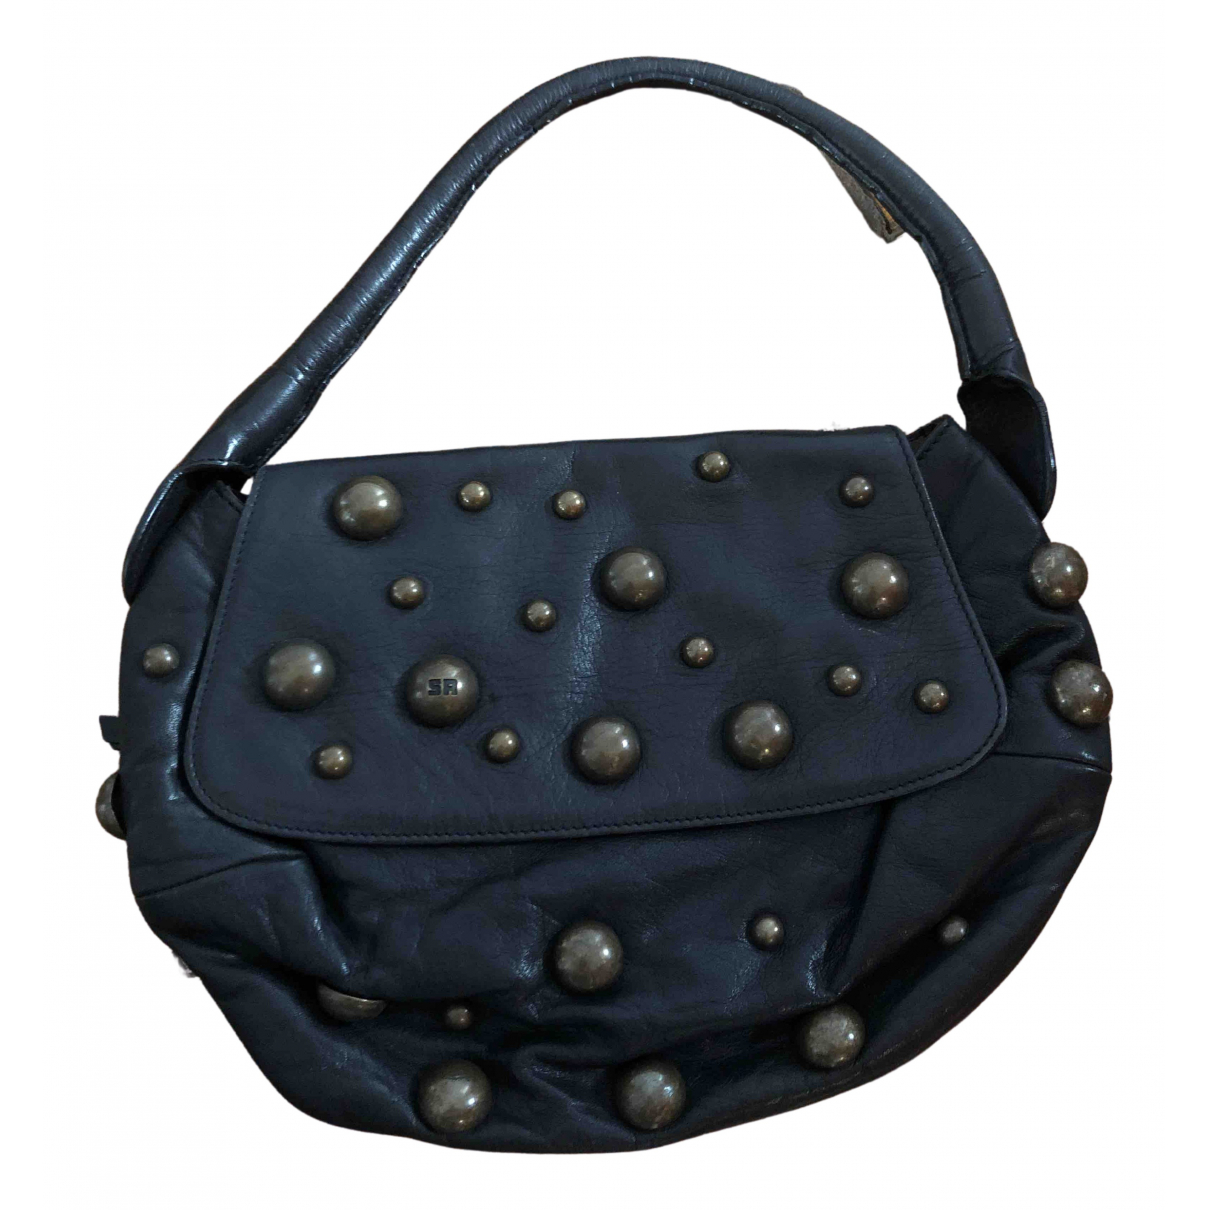 Sonia Rykiel \N Black Leather handbag for Women \N